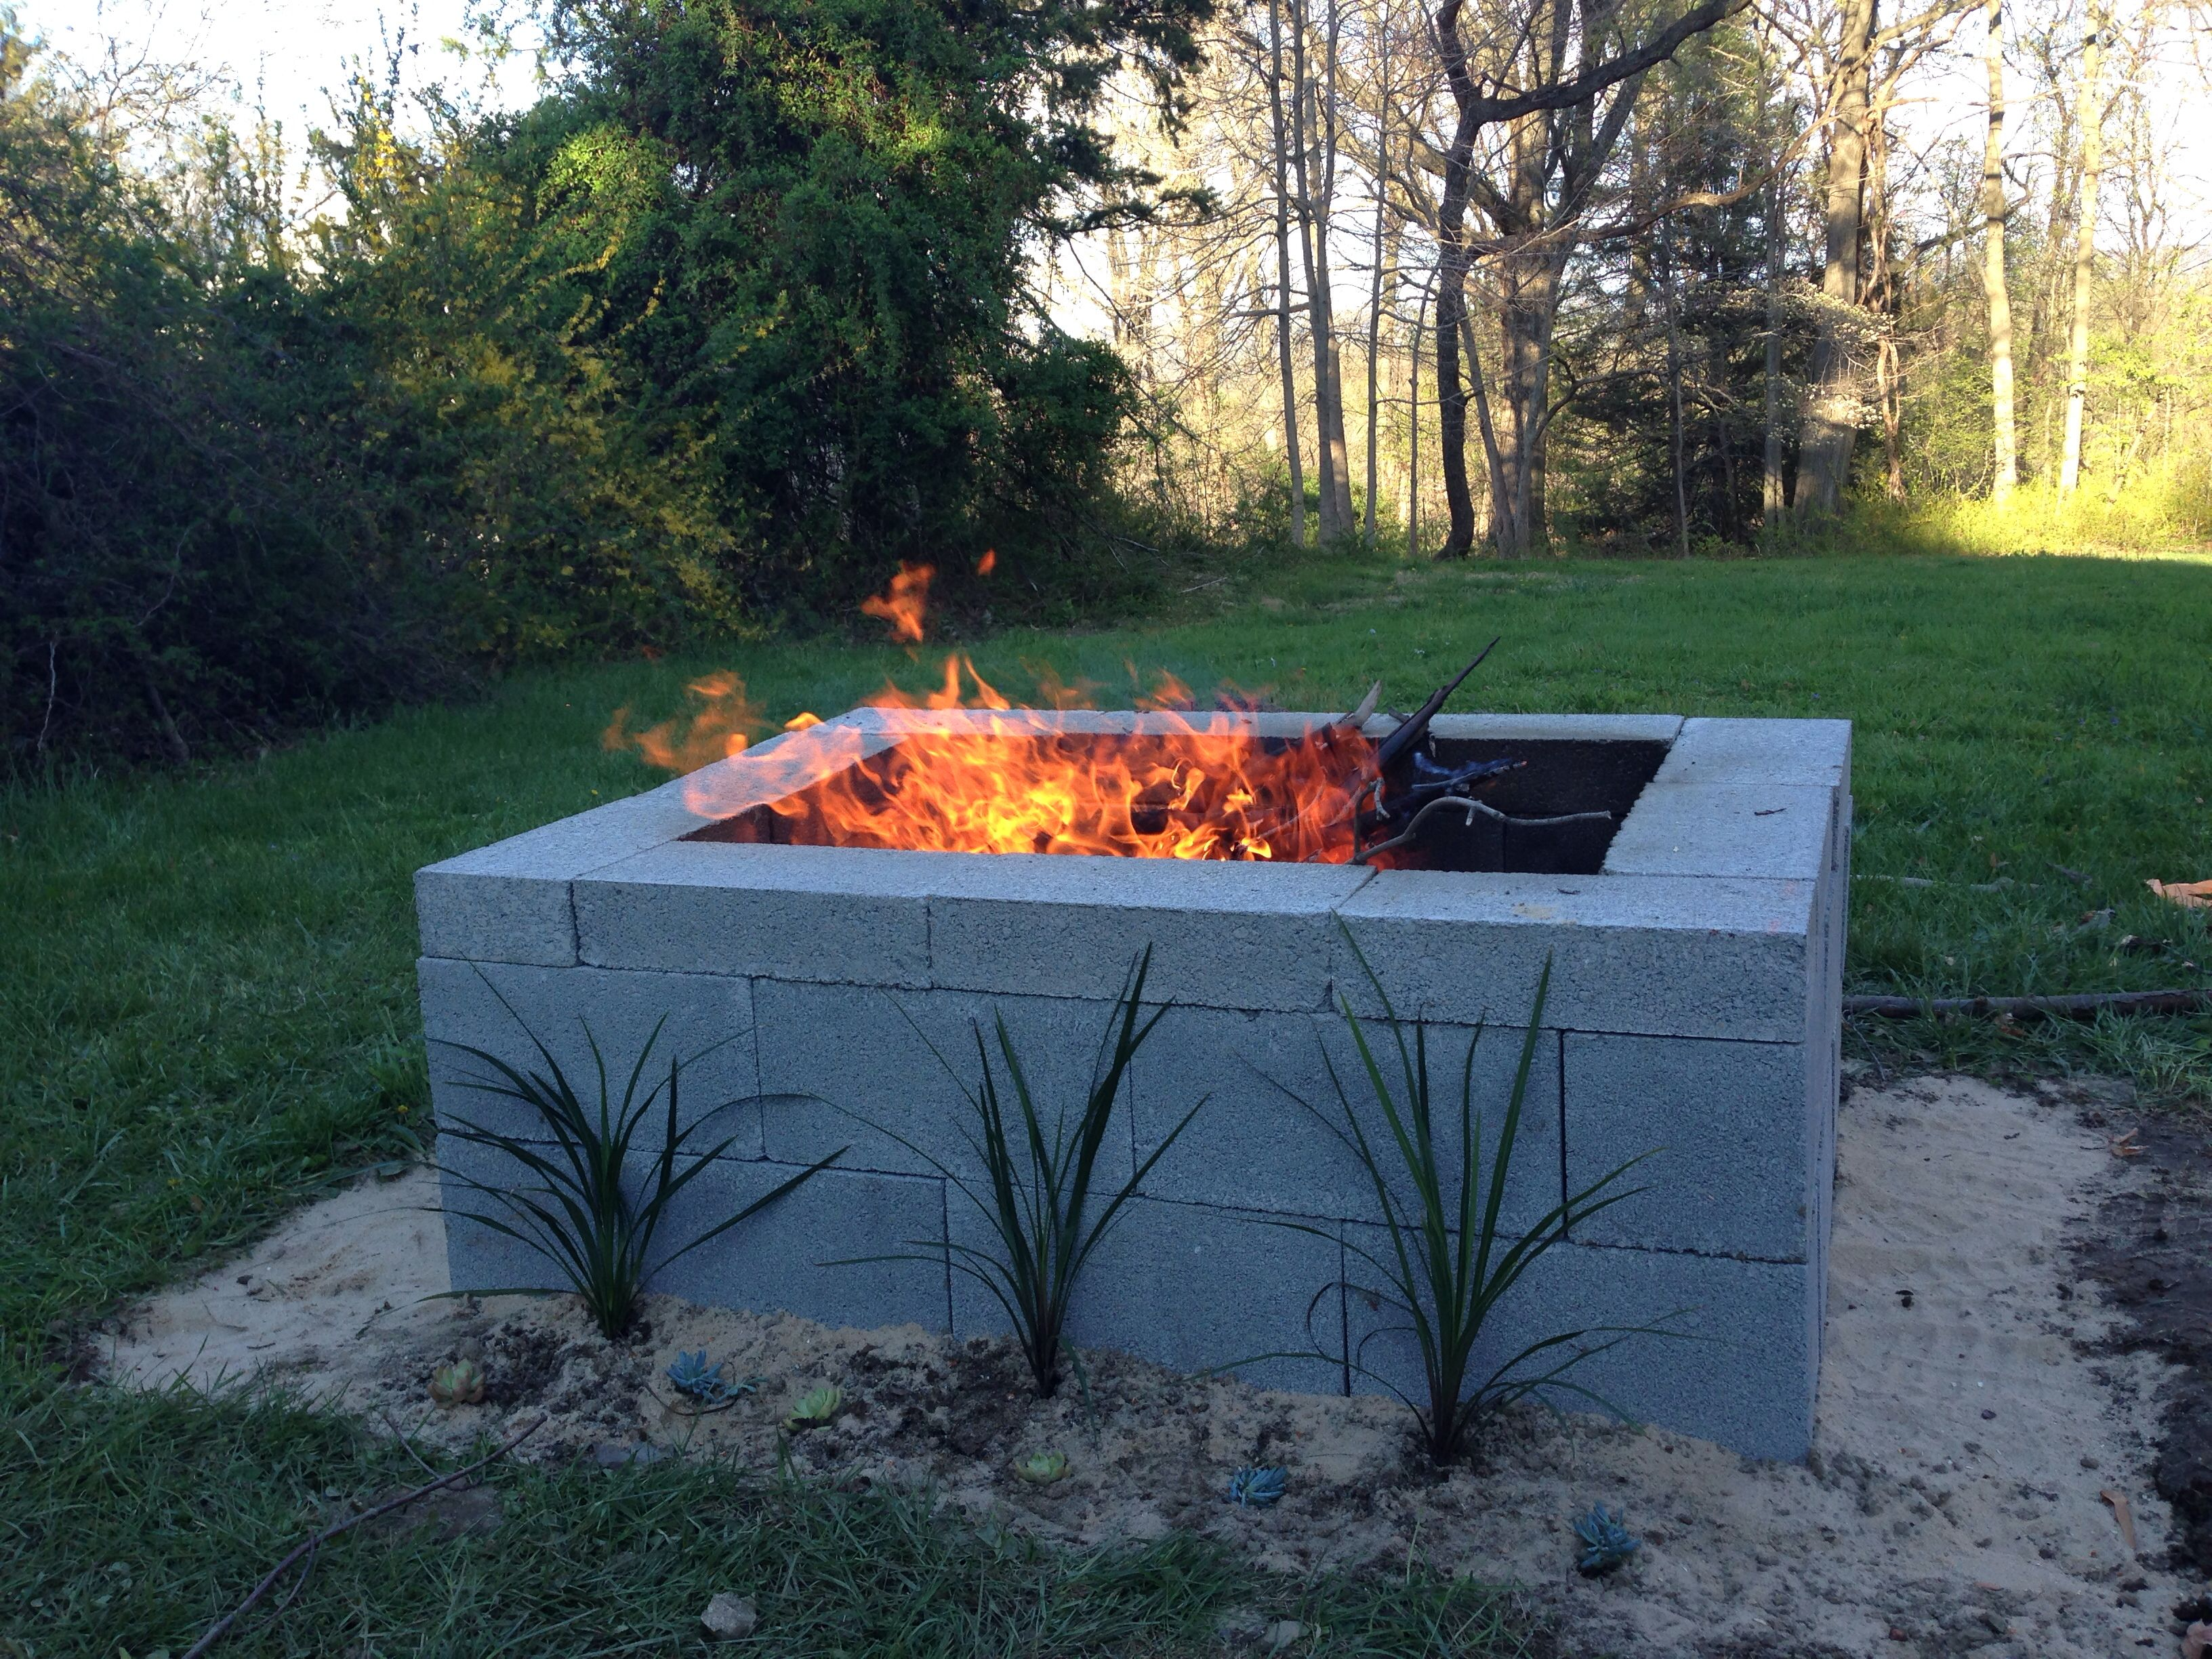 Cinder Block Fireplace Fresh 15 Outstanding Cinder Block Fire Pit Design Ideas for